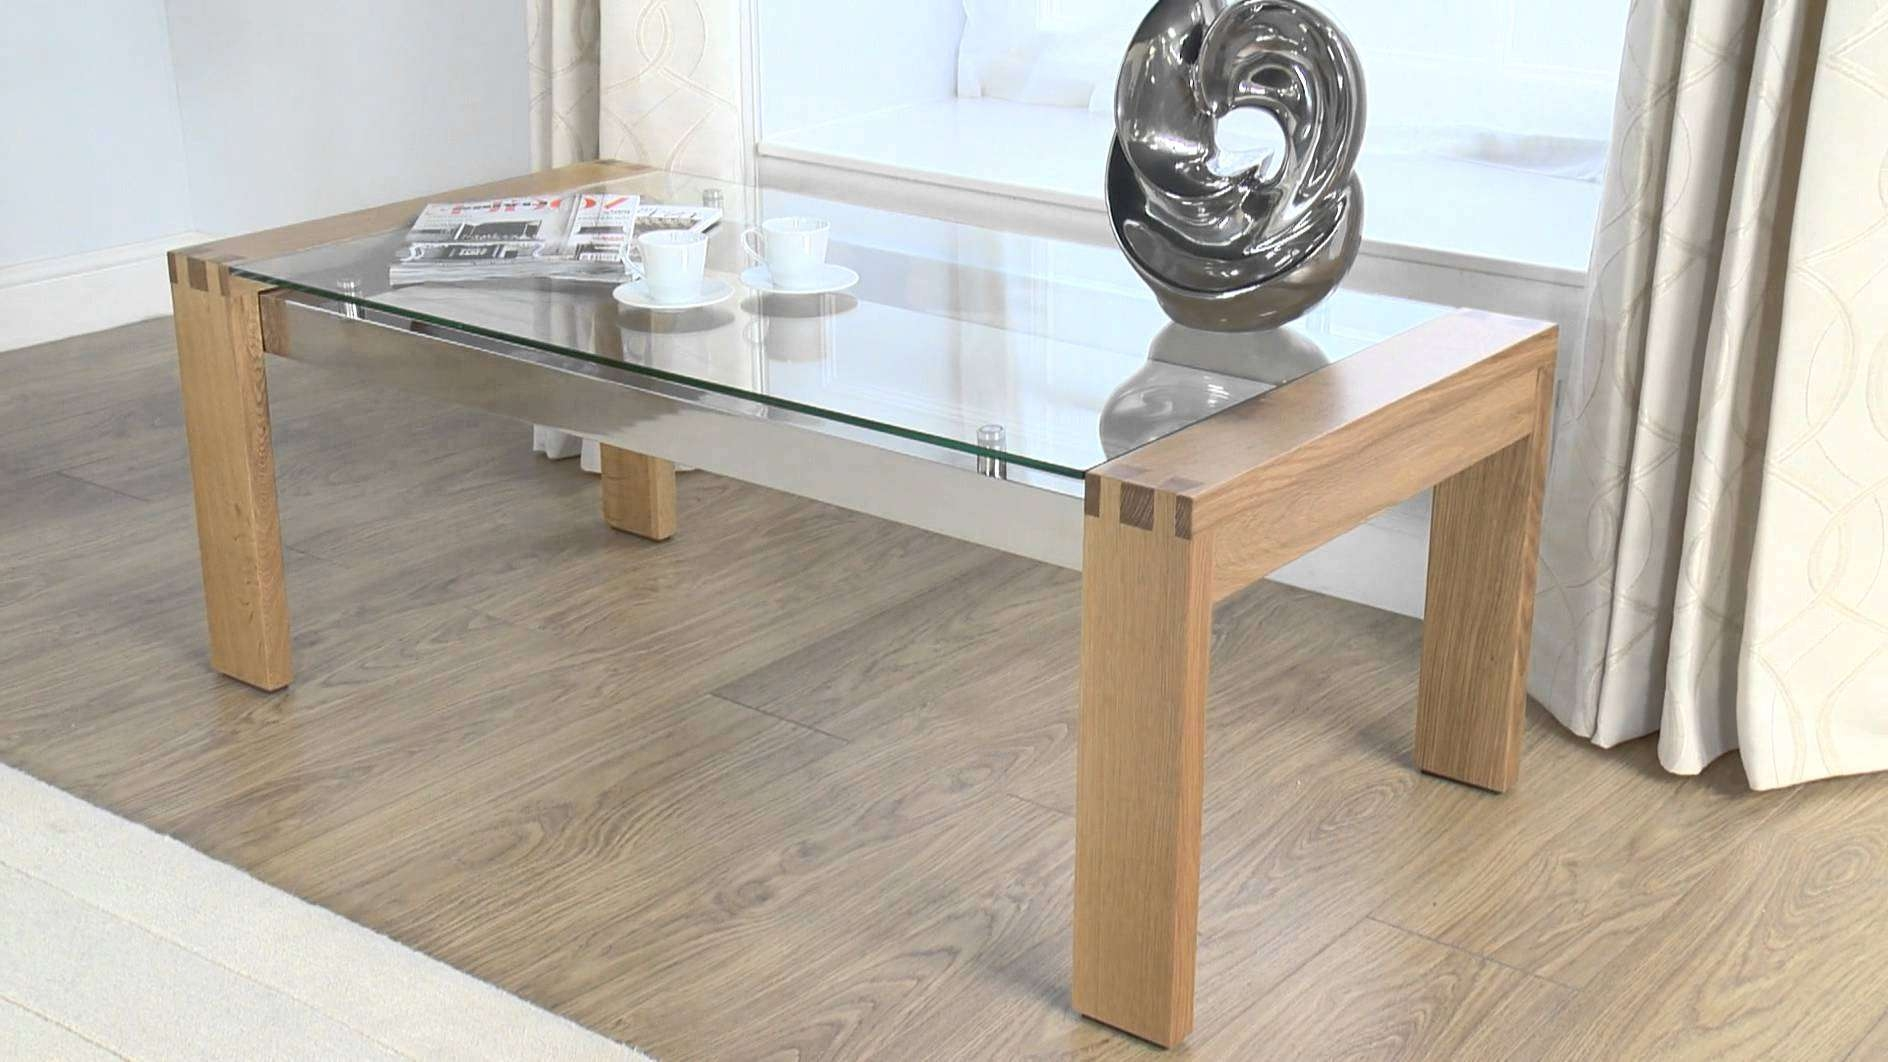 Newest Oak Coffee Table With Glass Top For Coffee Table : Fabulous Solid Oak Coffee Table Mission Style (View 12 of 20)